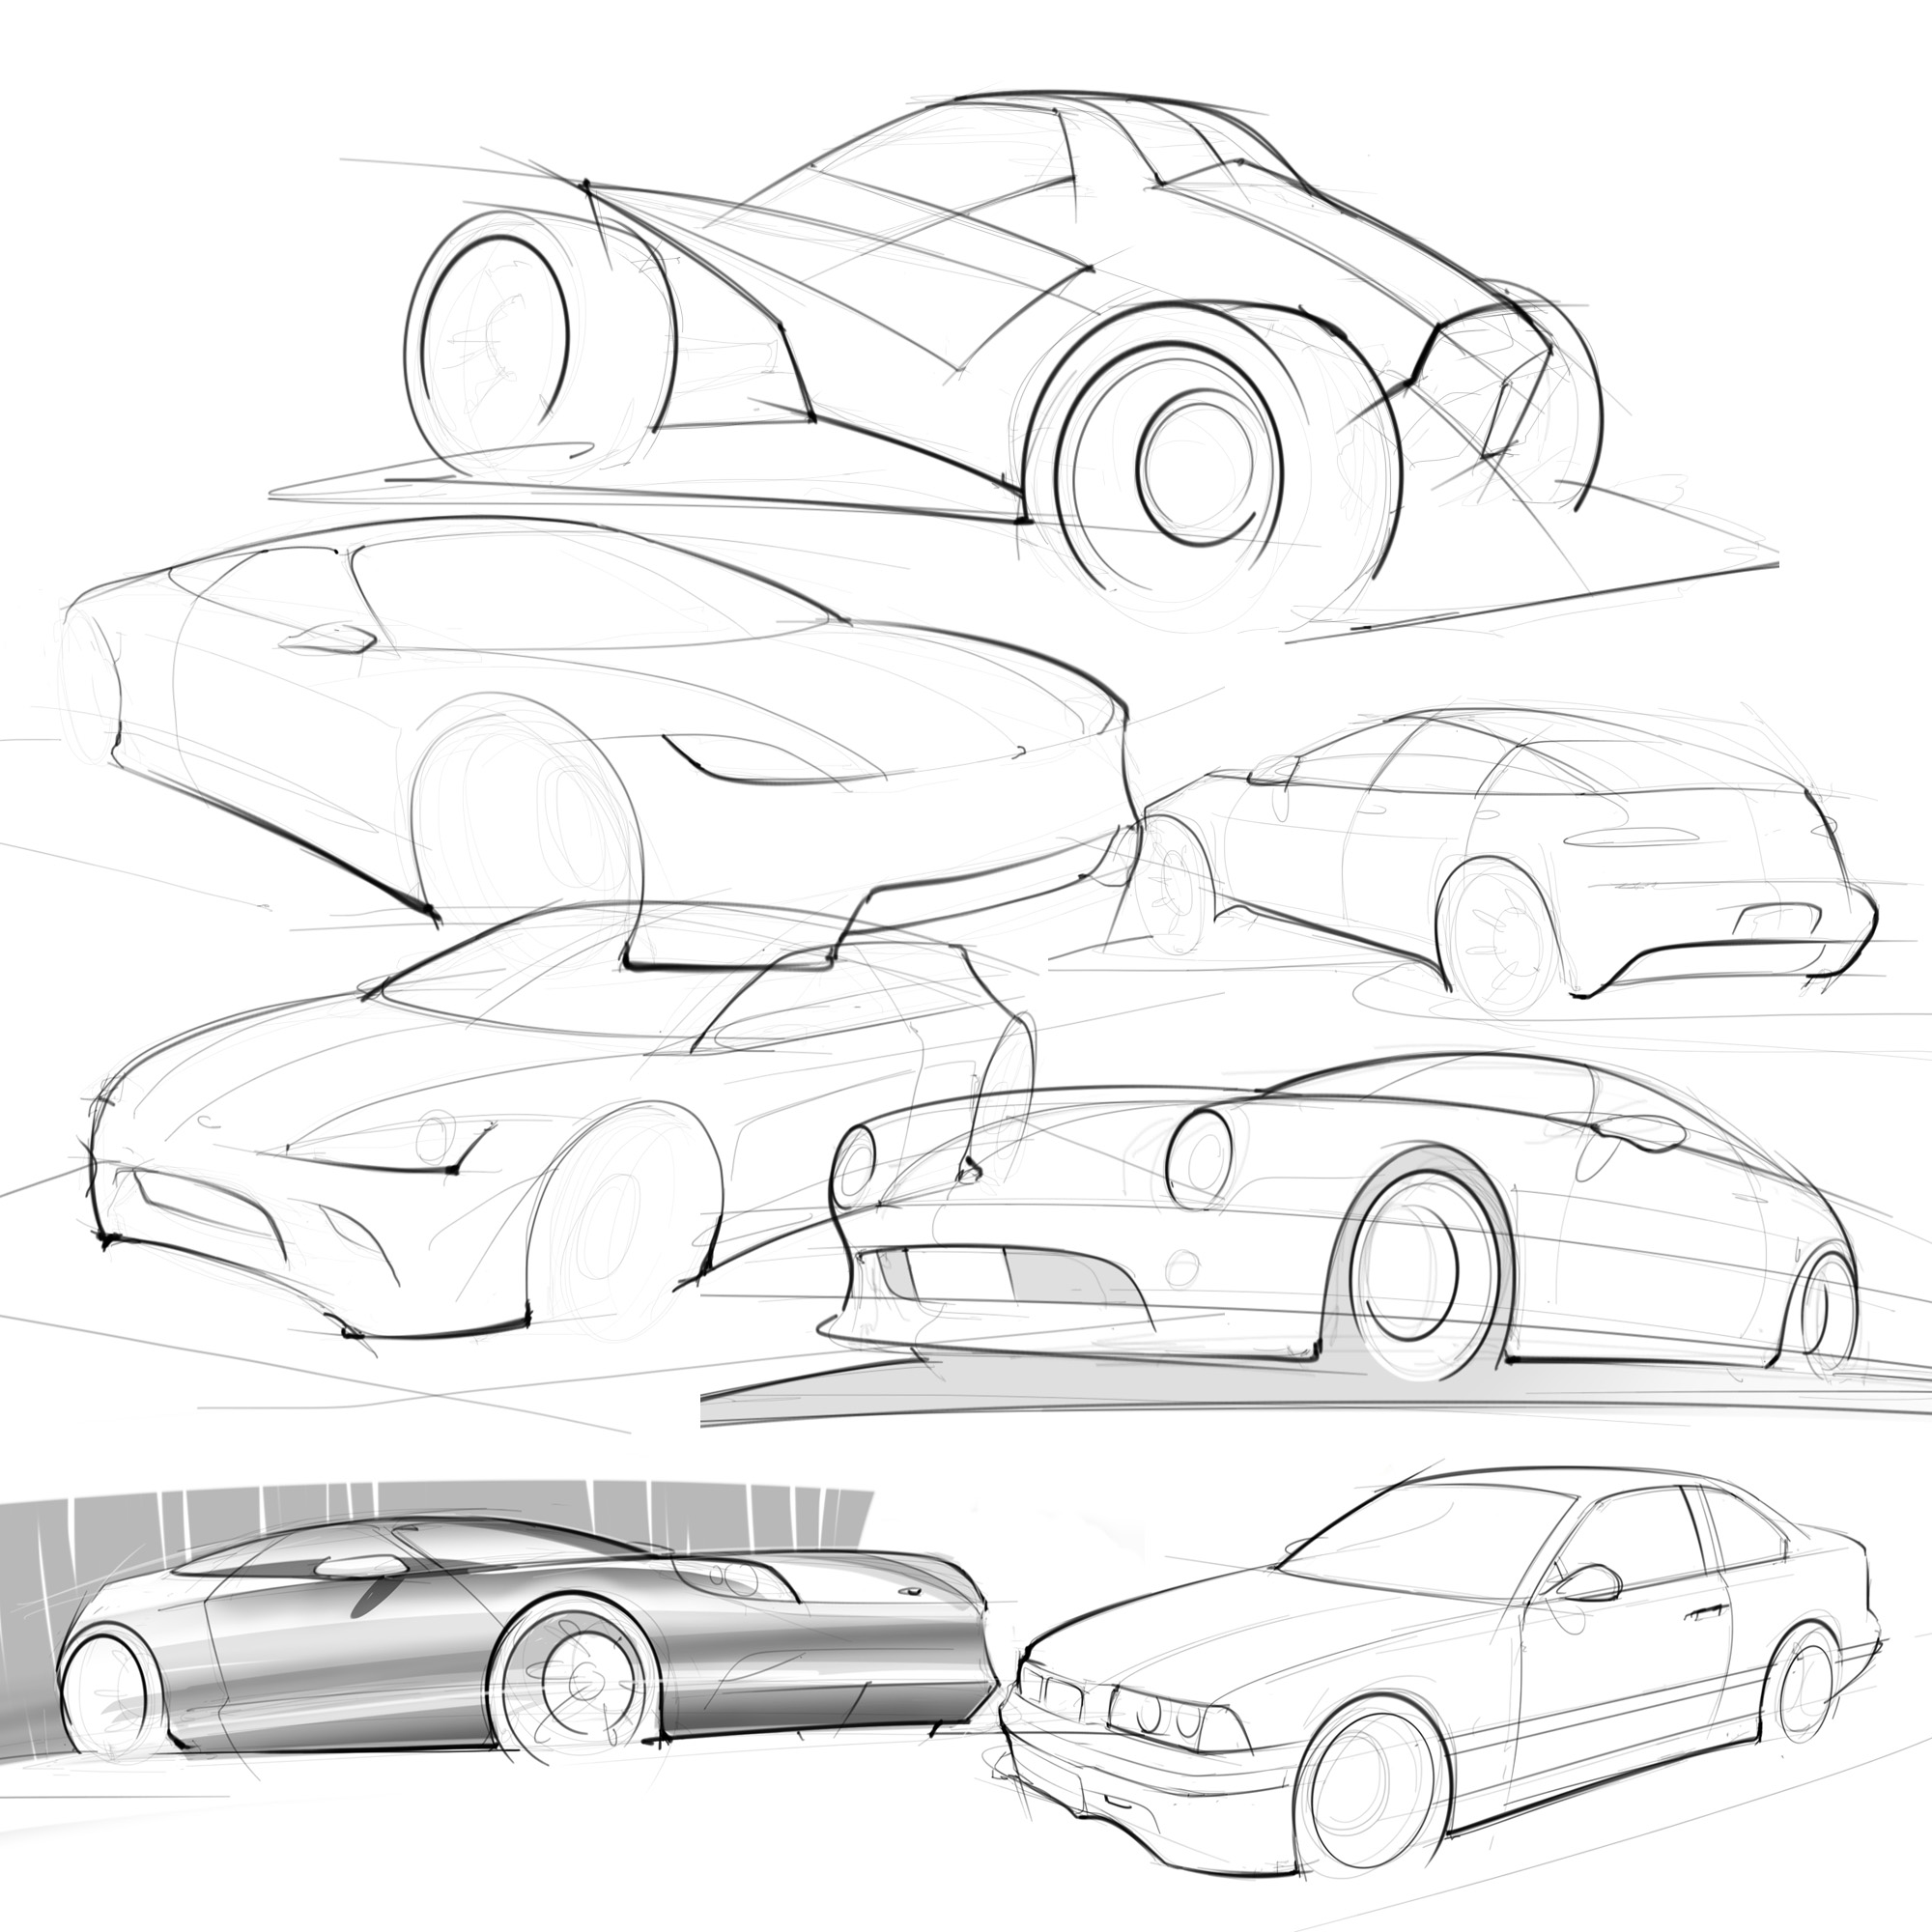 random car sketches